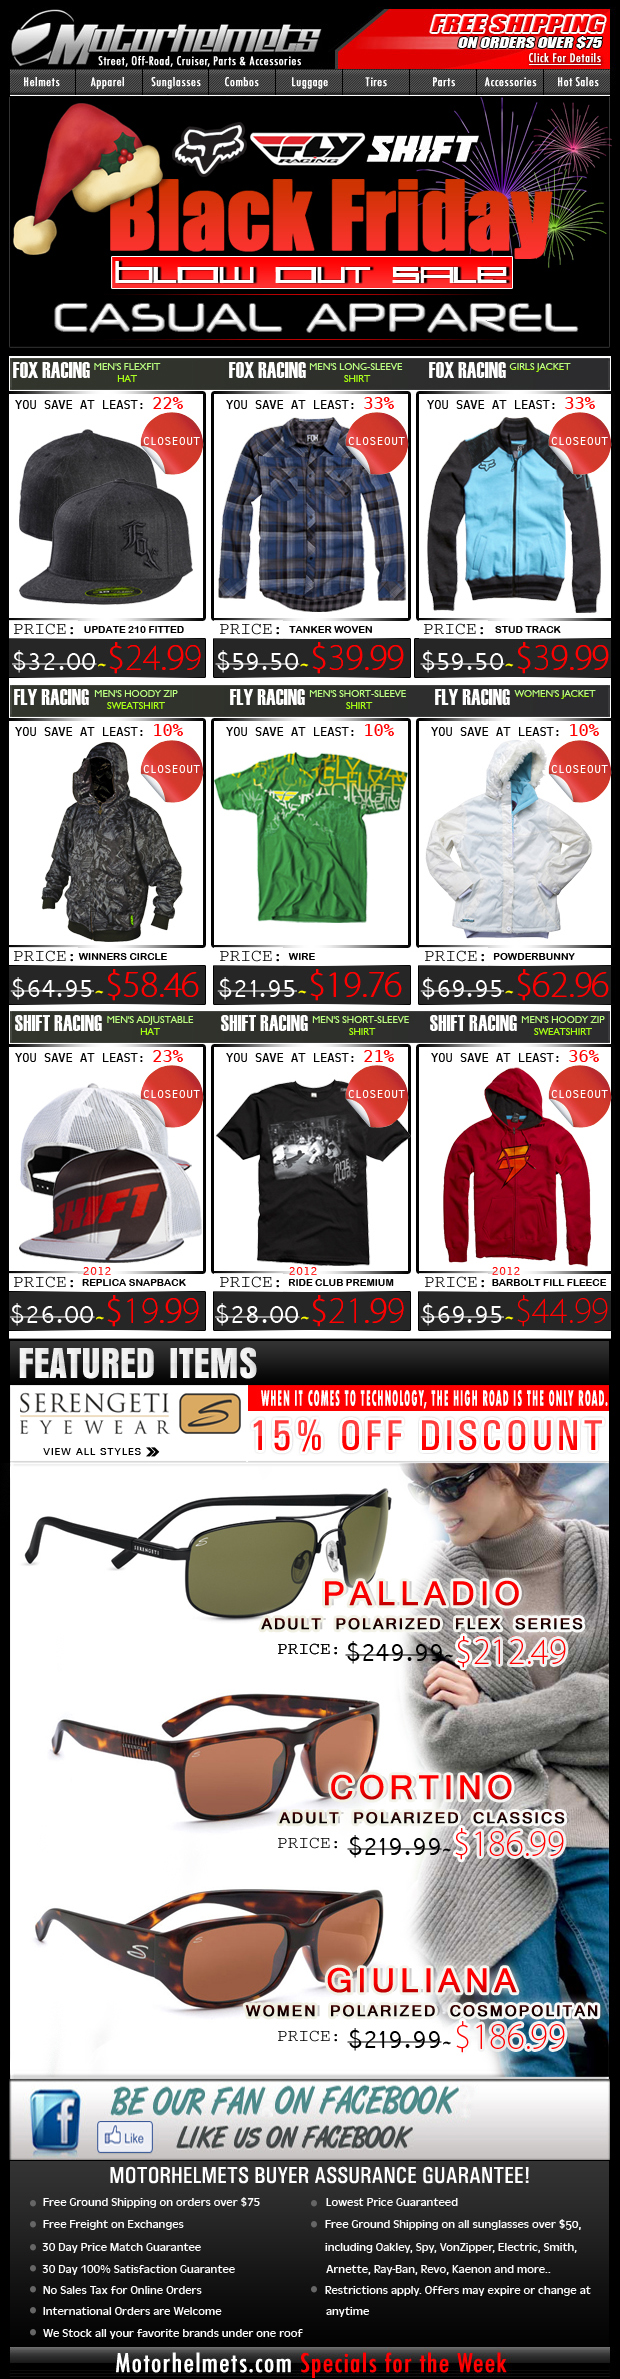 Countdown to Black Friday SALE: Fox, Fly, Shift Closeouts!